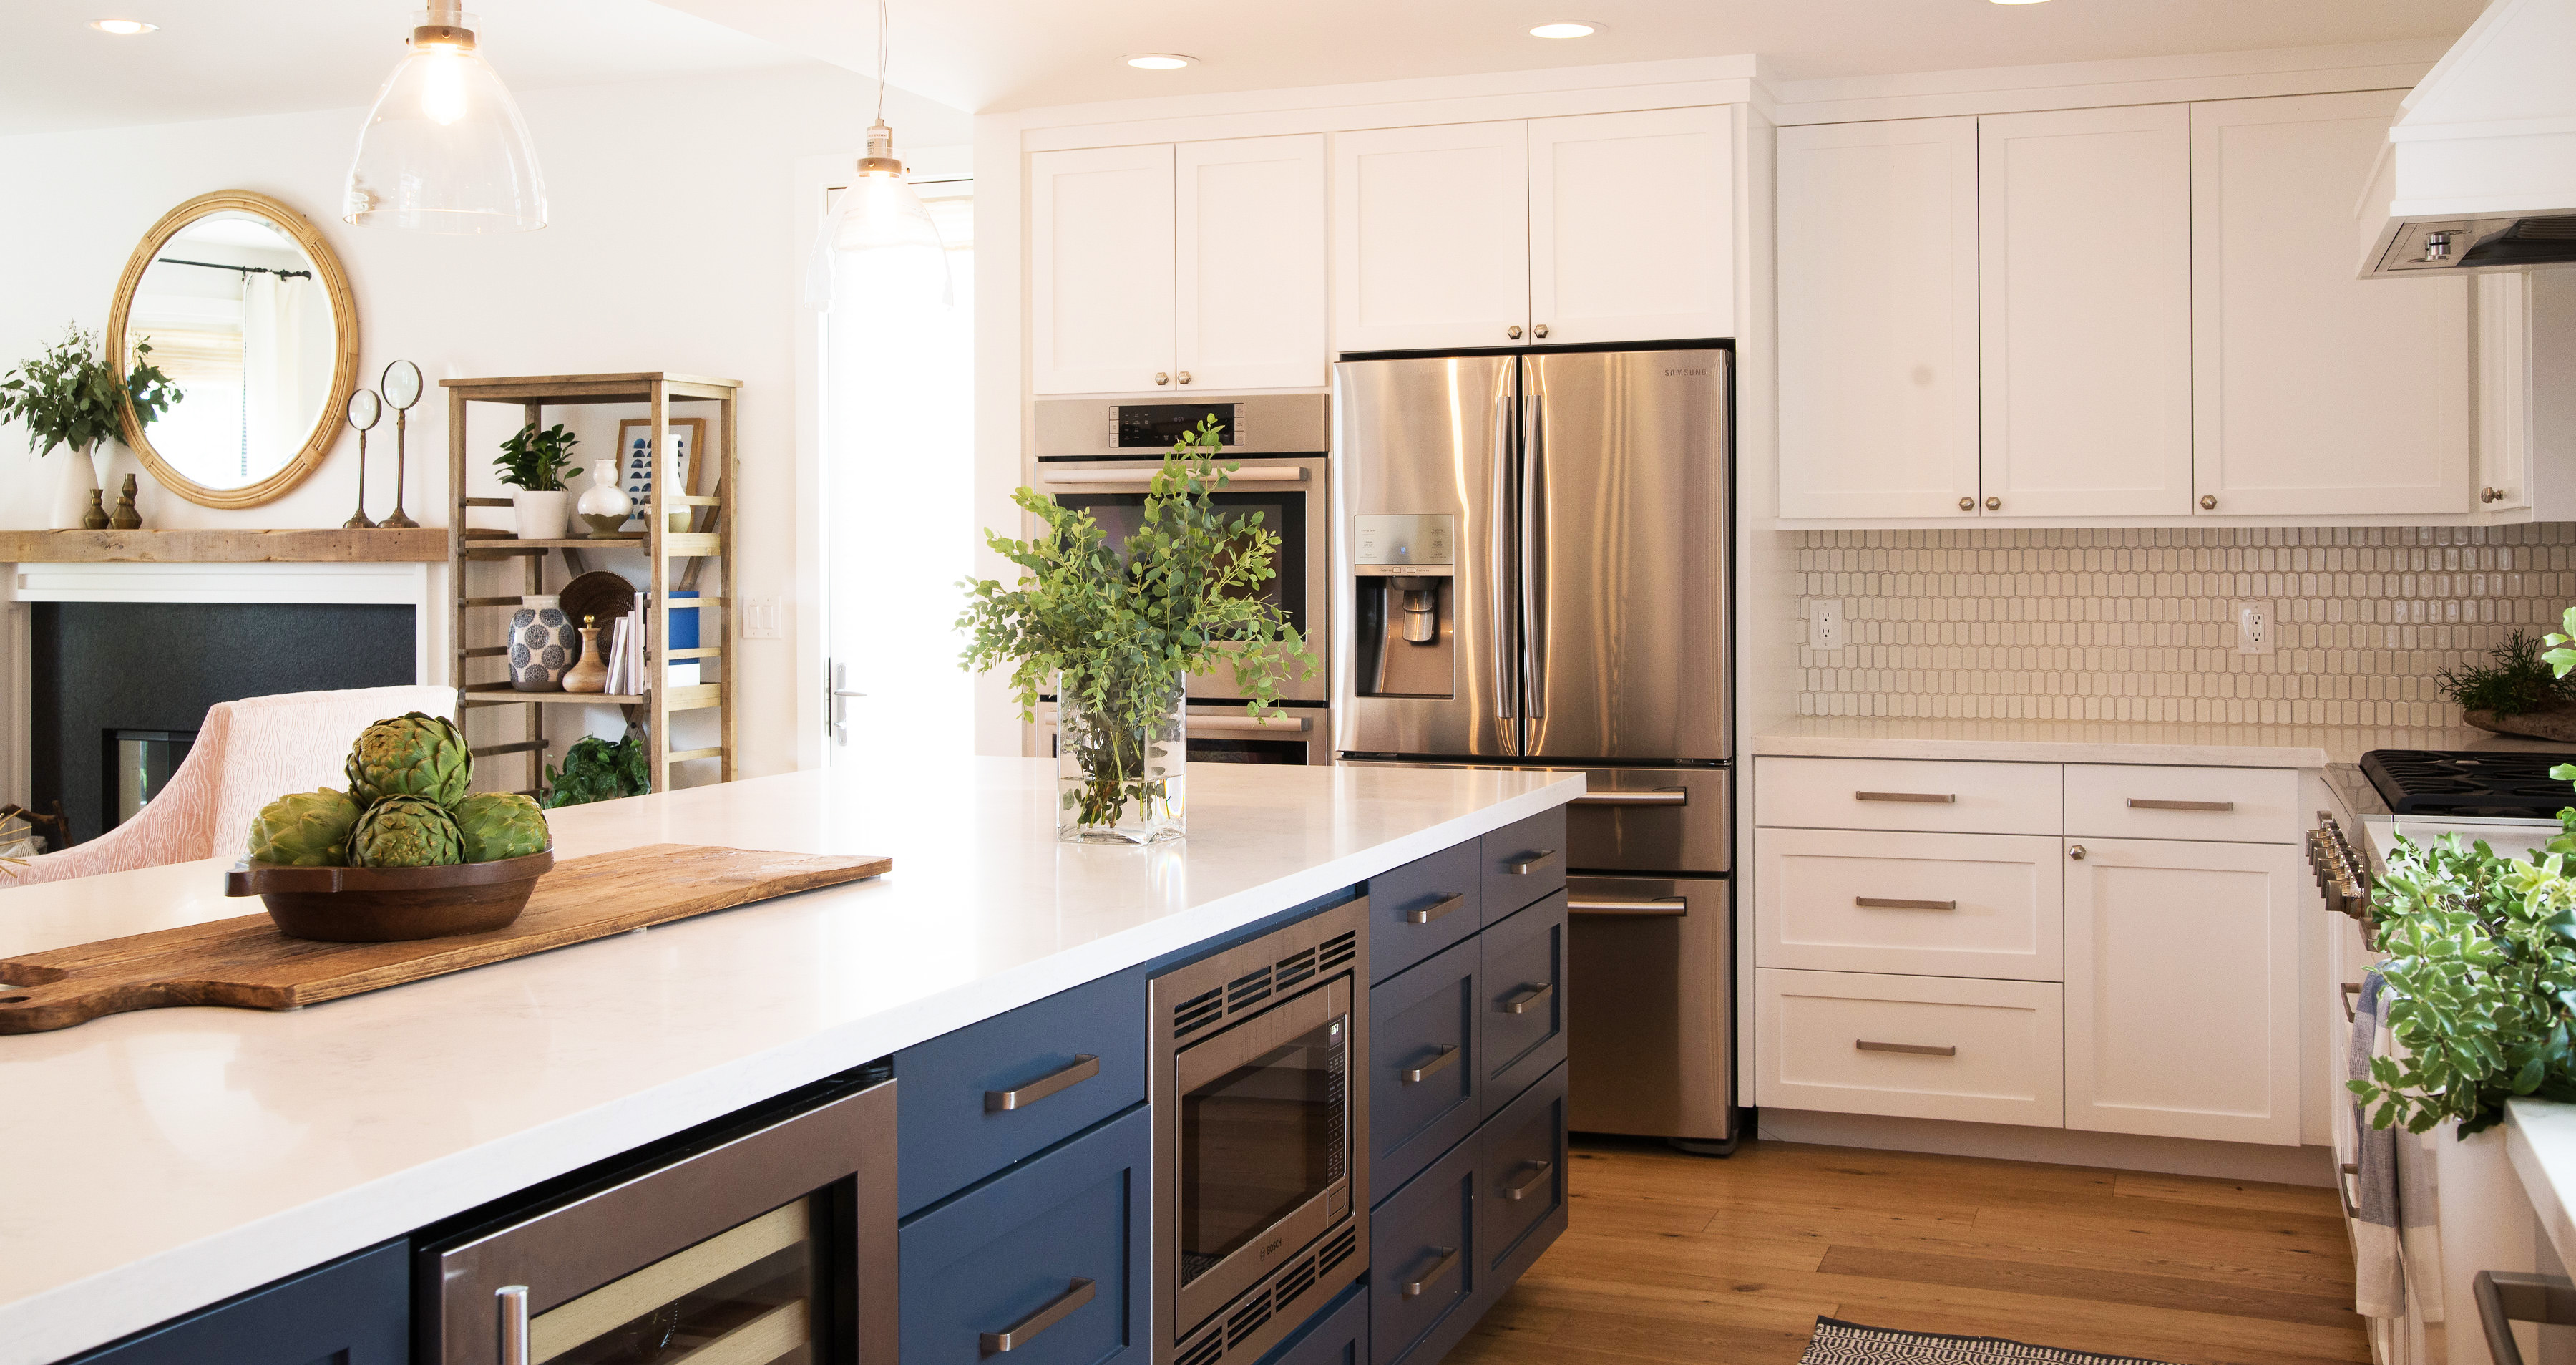 Pismo Beach Kitchen Design